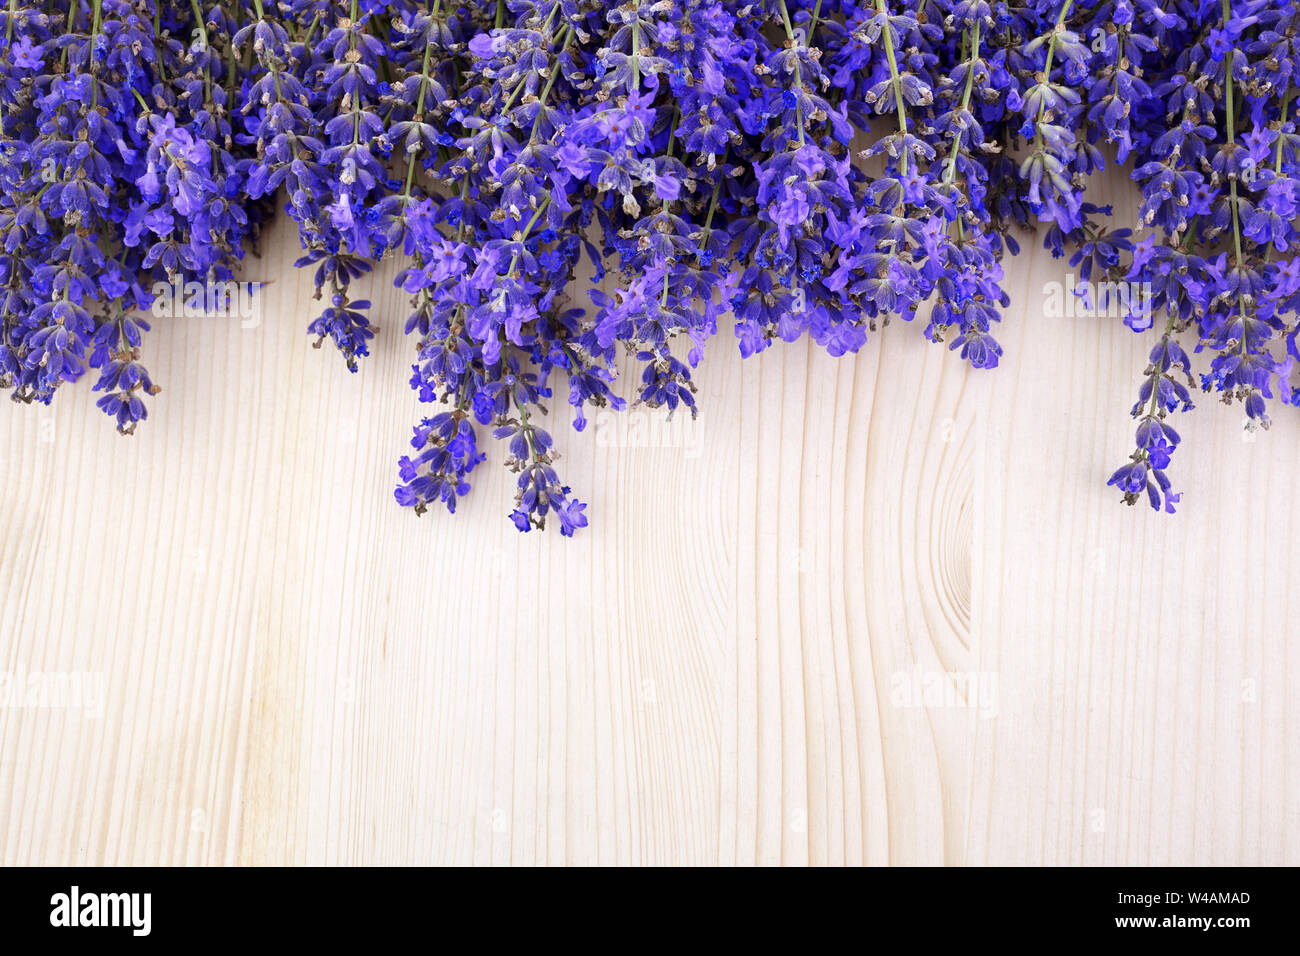 Flowers Background Frame Pattern Of Lavender Flowers On Wooden